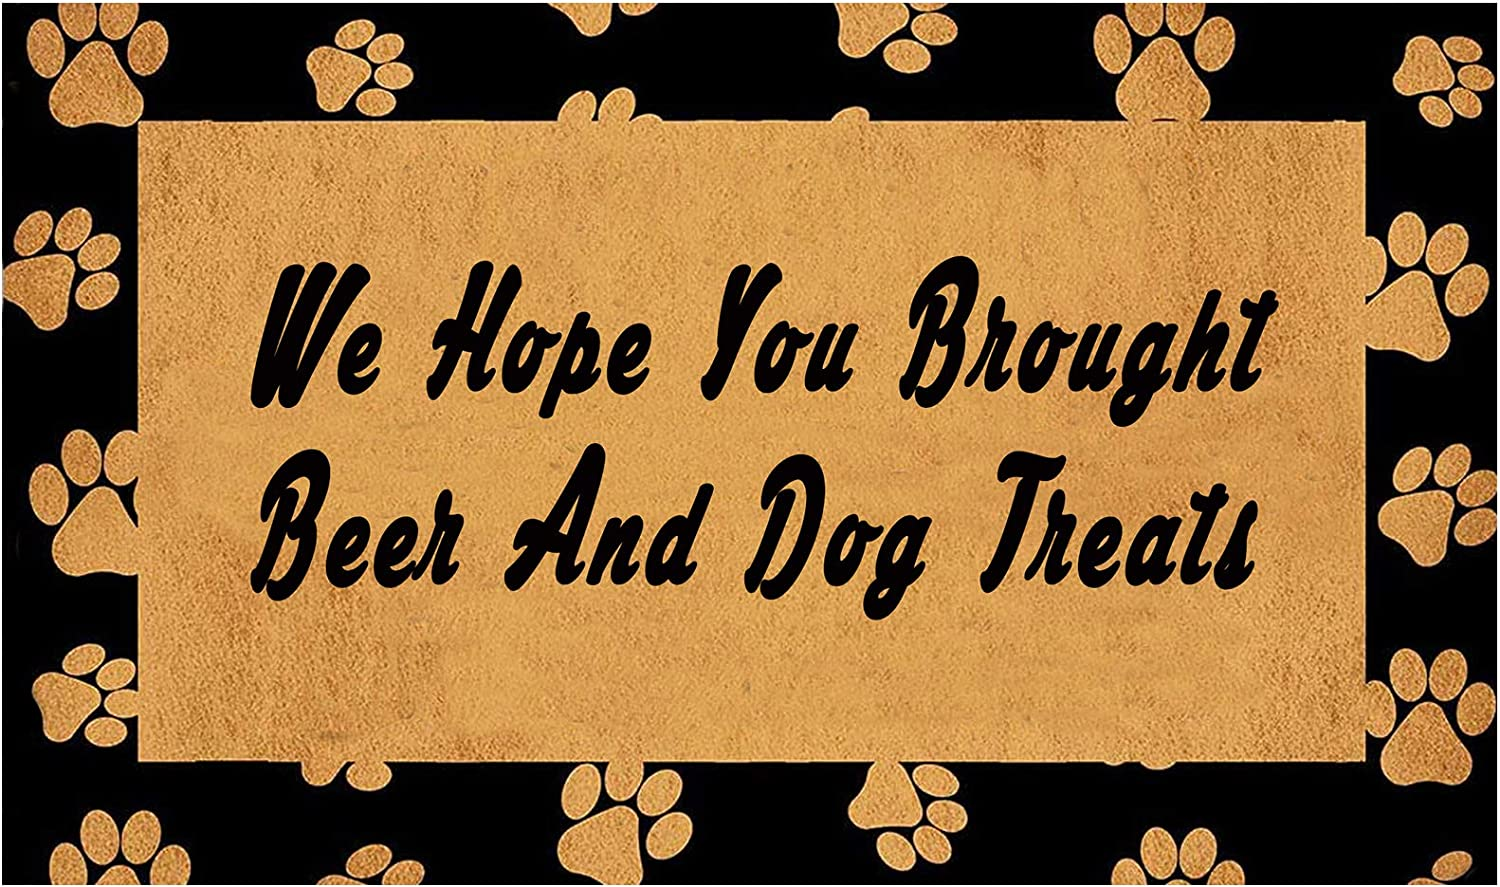 """genaric Welcome Doormat(29.5"""" x 17.7"""") Non-Slip mat Funny mat Personalized Home Decor mats for in Door Kitchen Entrance Rugs and Mats (We Hope You Brought Beer and Dog Treats)"""